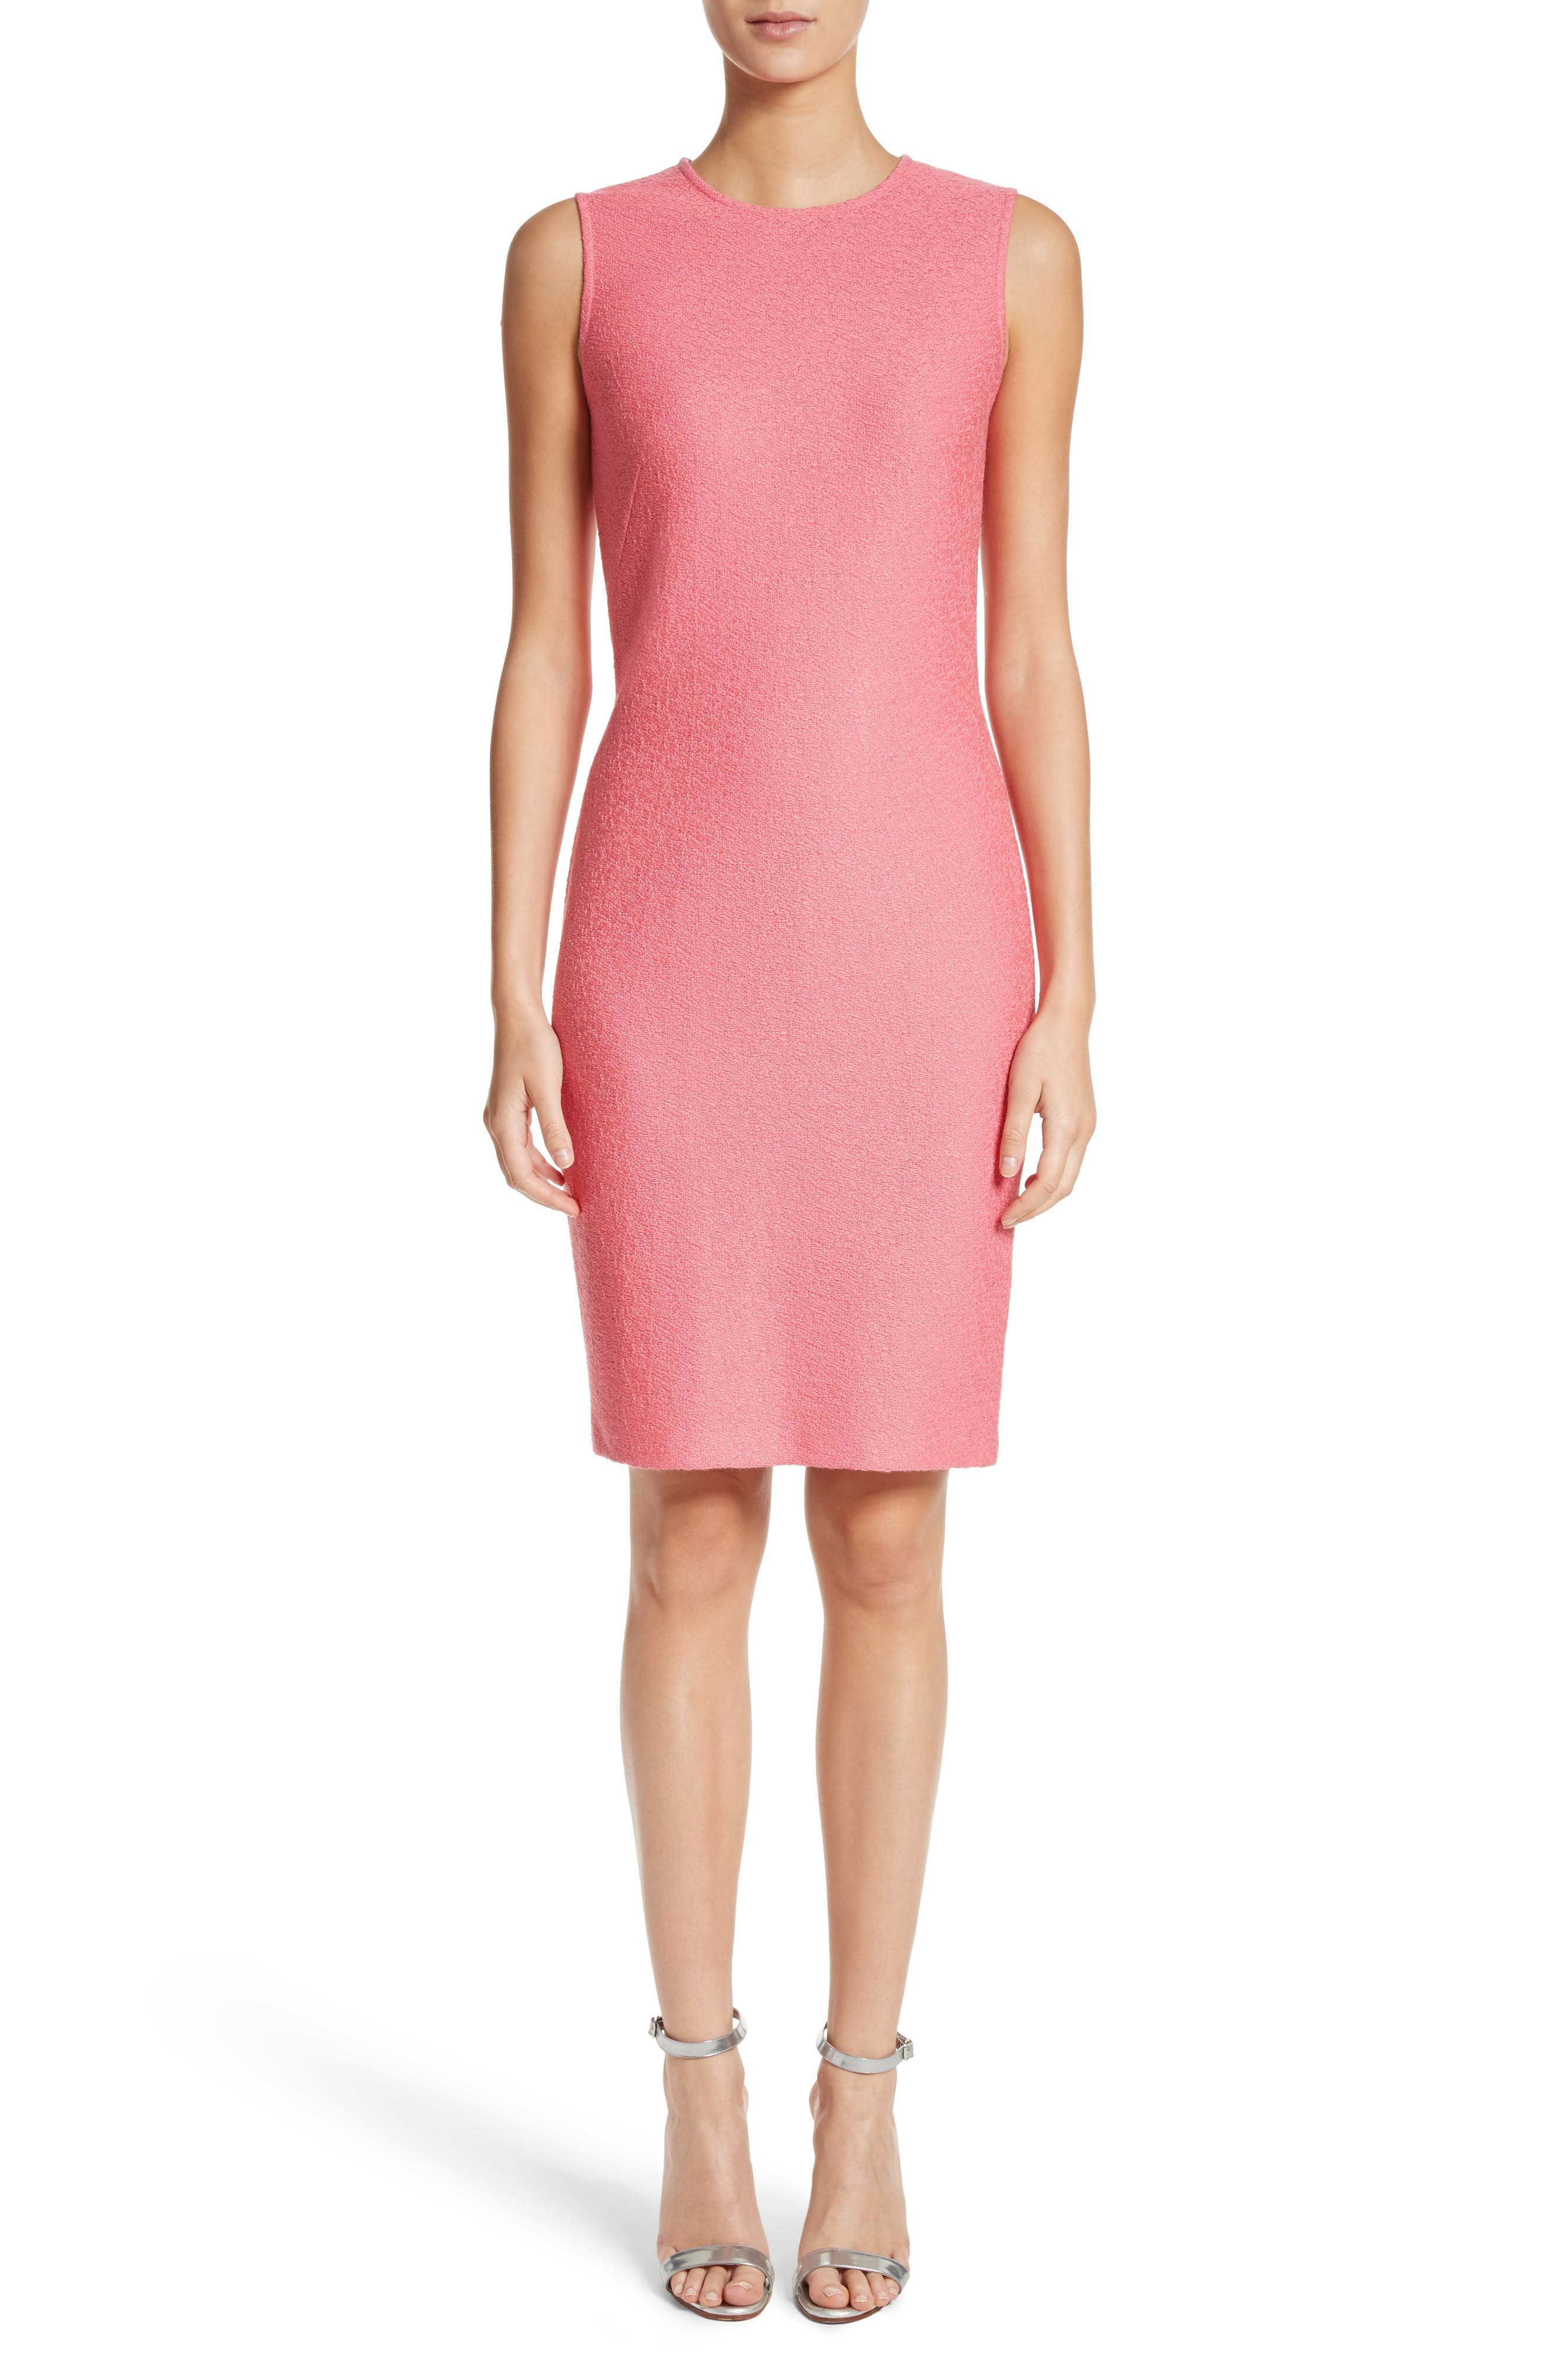 Alternate Image 1 Selected - St. John Collection Hannah Knit Sheath Dress